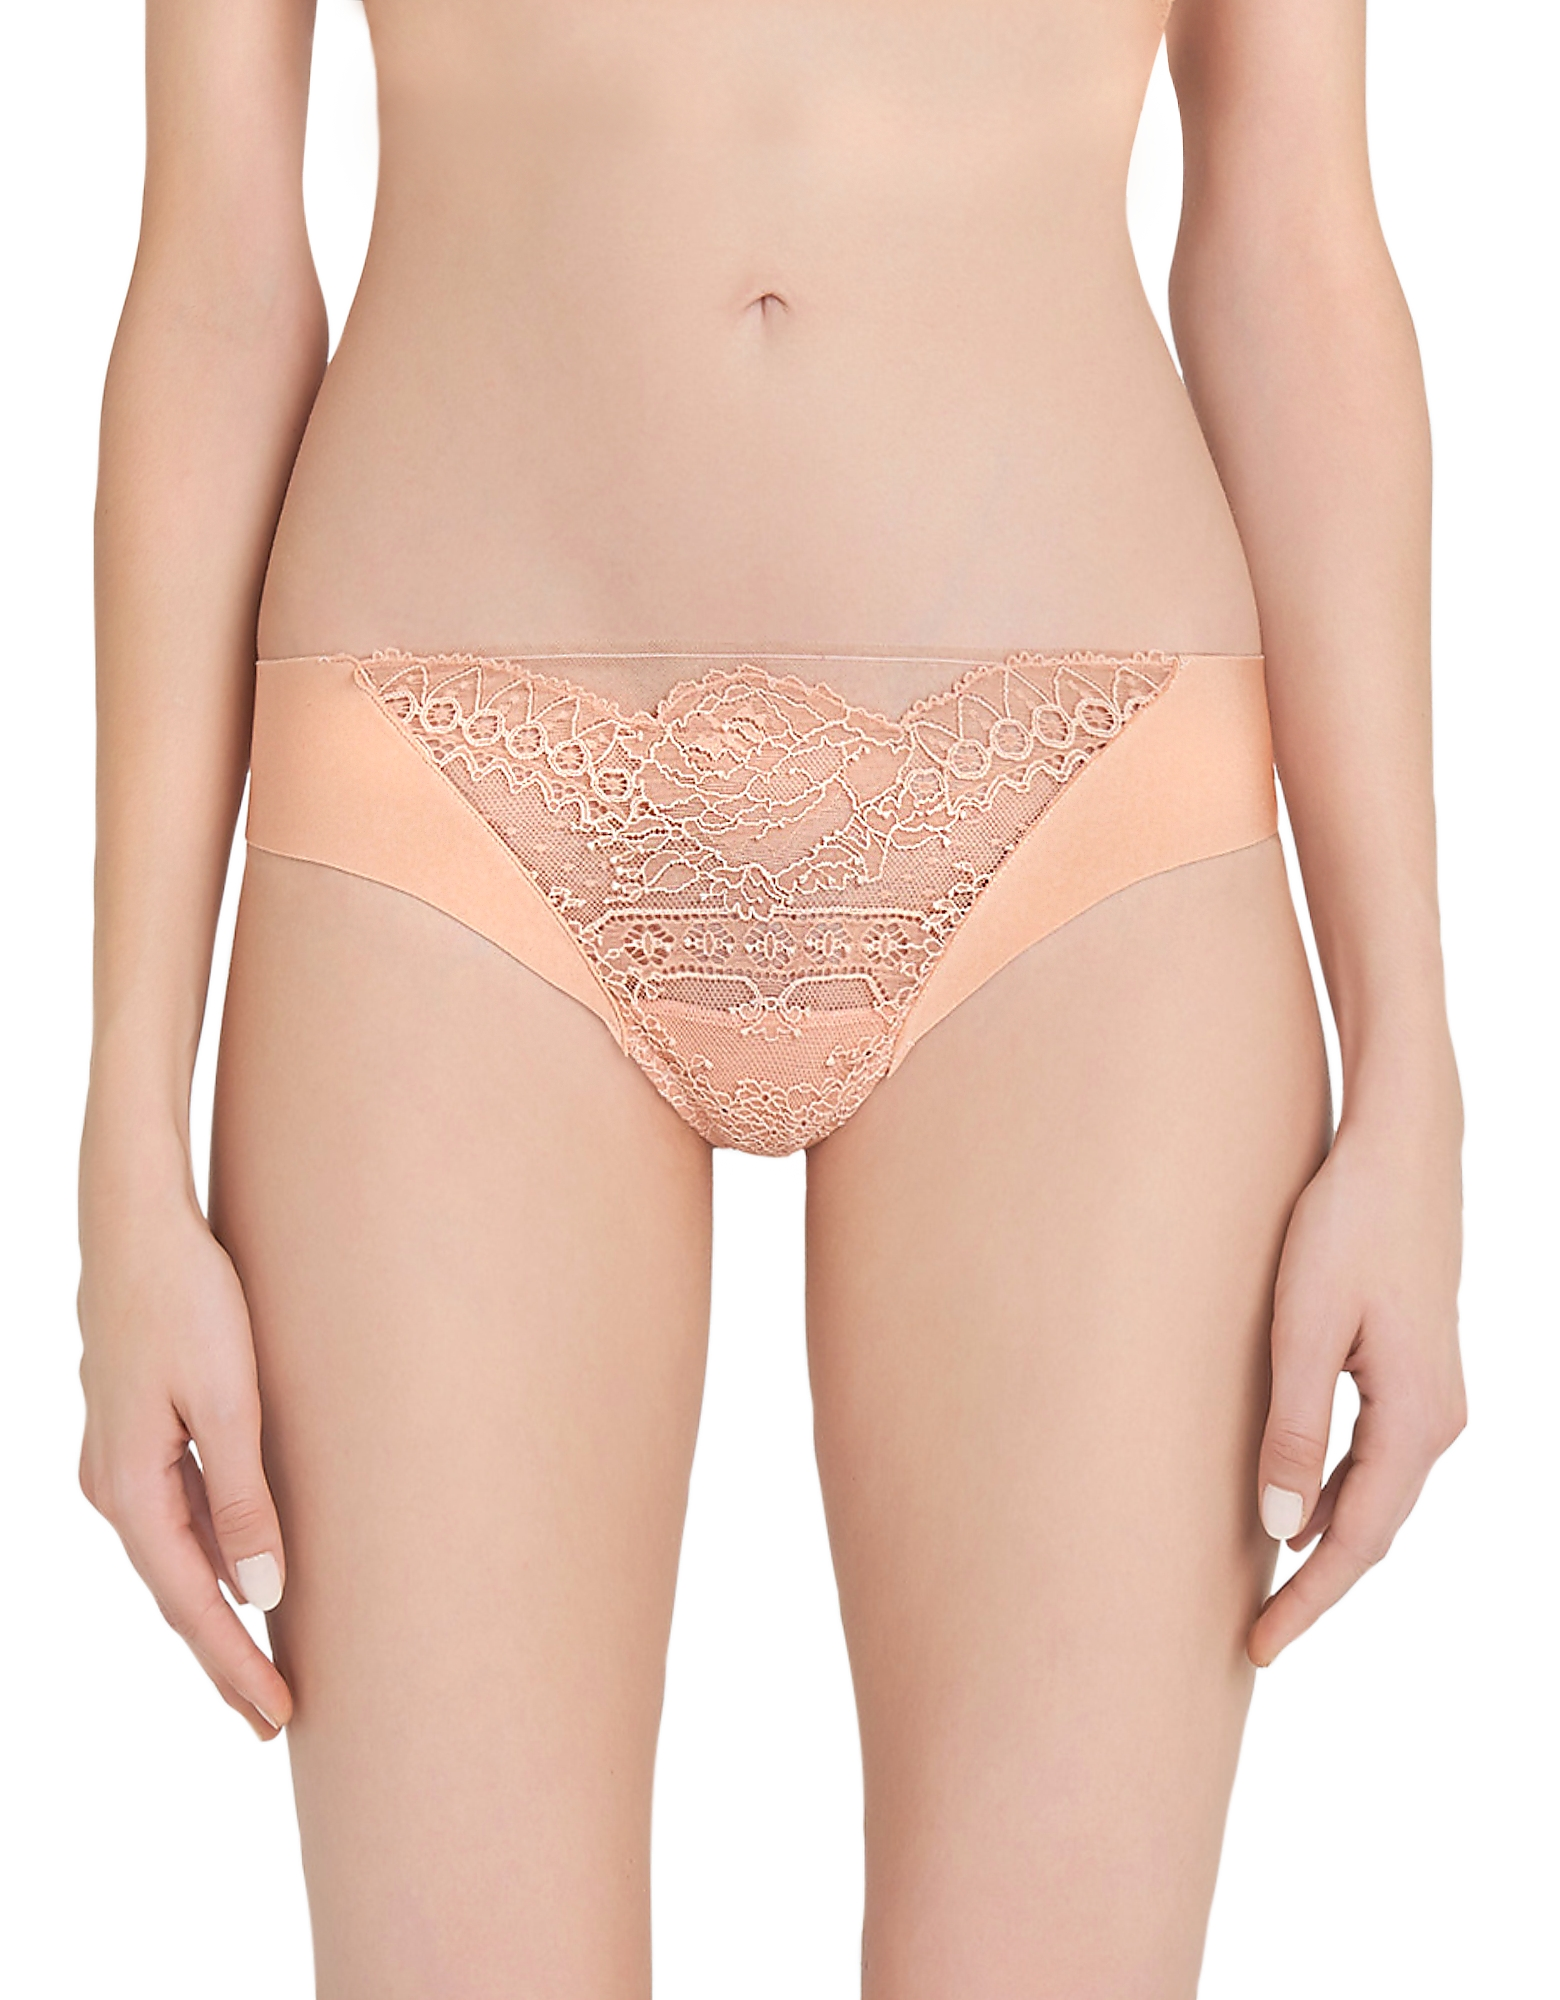 La Perla Panties, Lace Frills Nude Leavers Lace and Neoprene Low-rise Thong